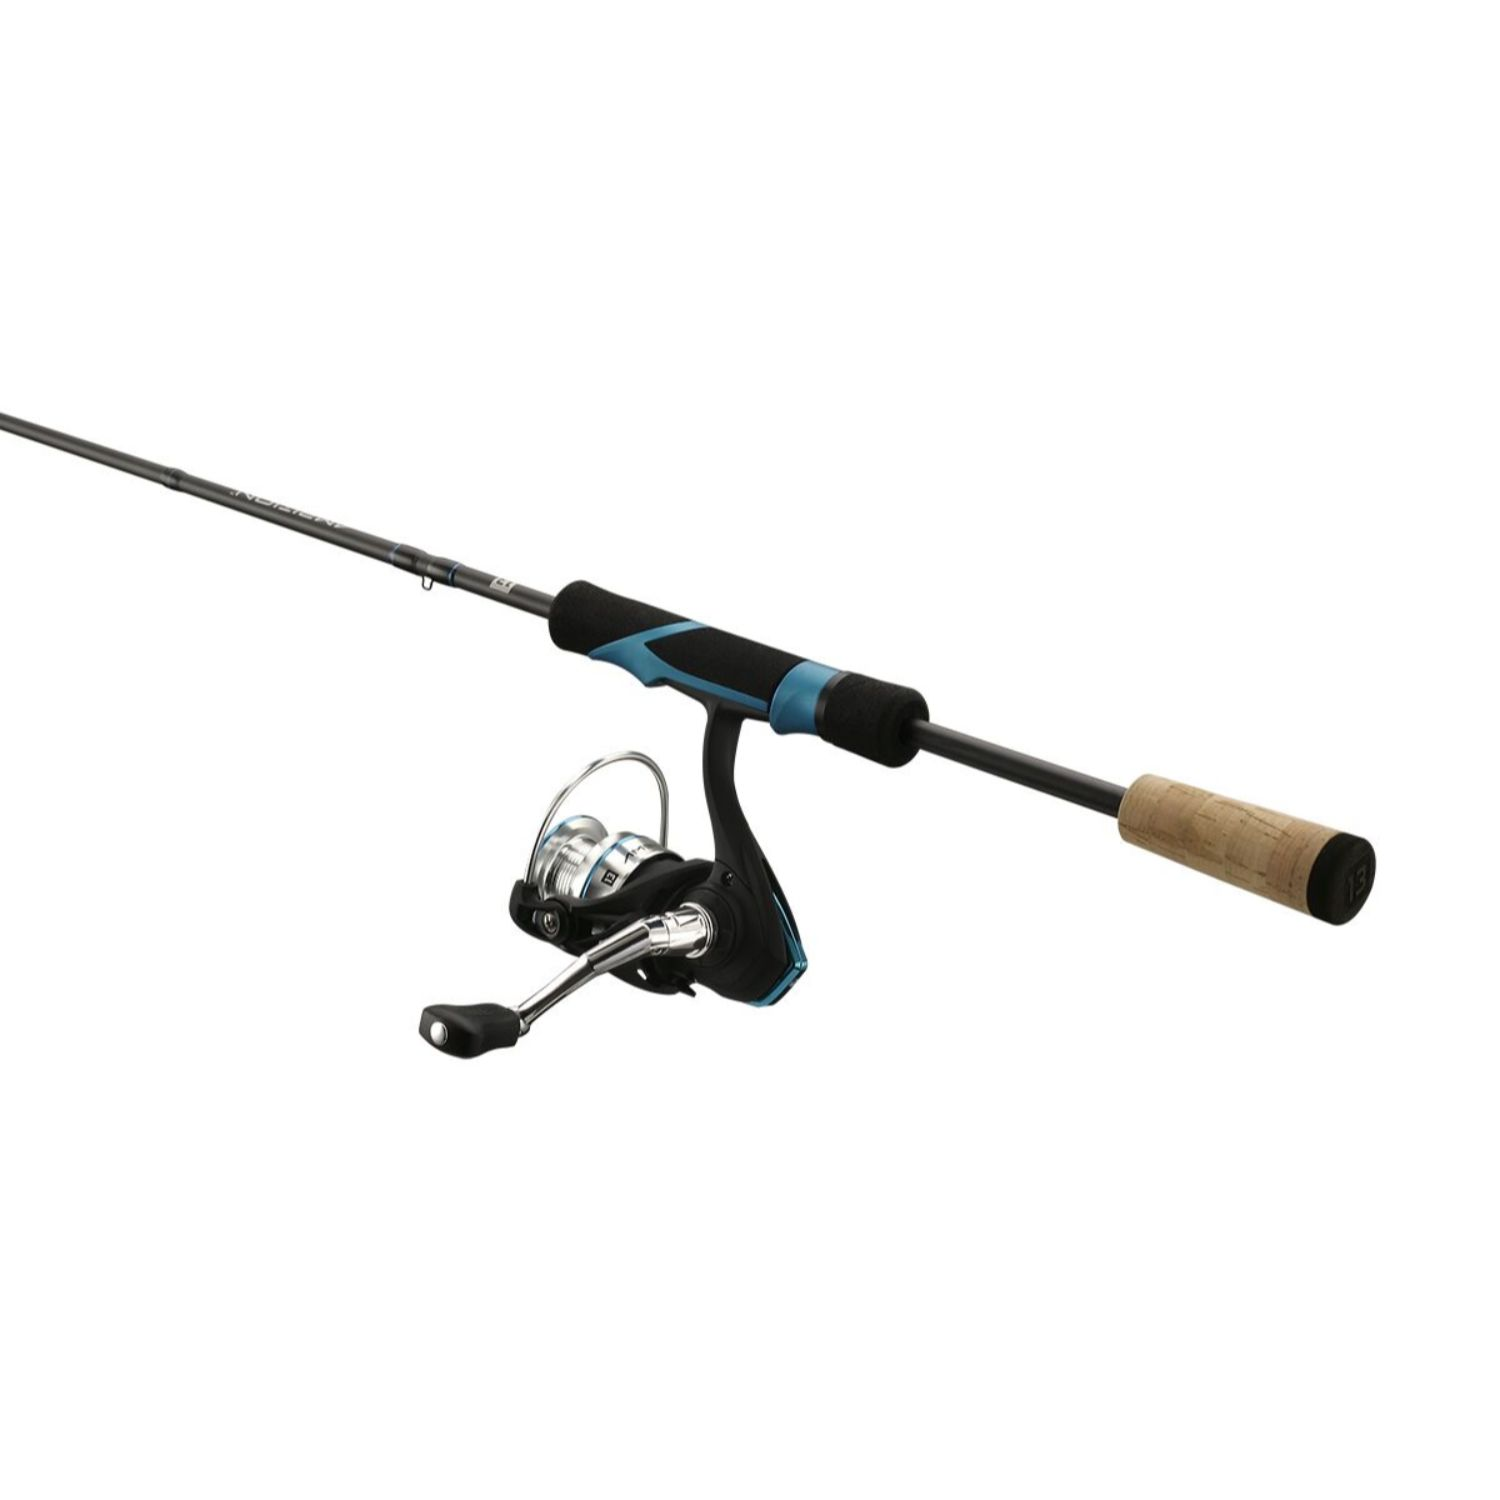 13 Fishing Ambition 5 ft M Spinning Combo